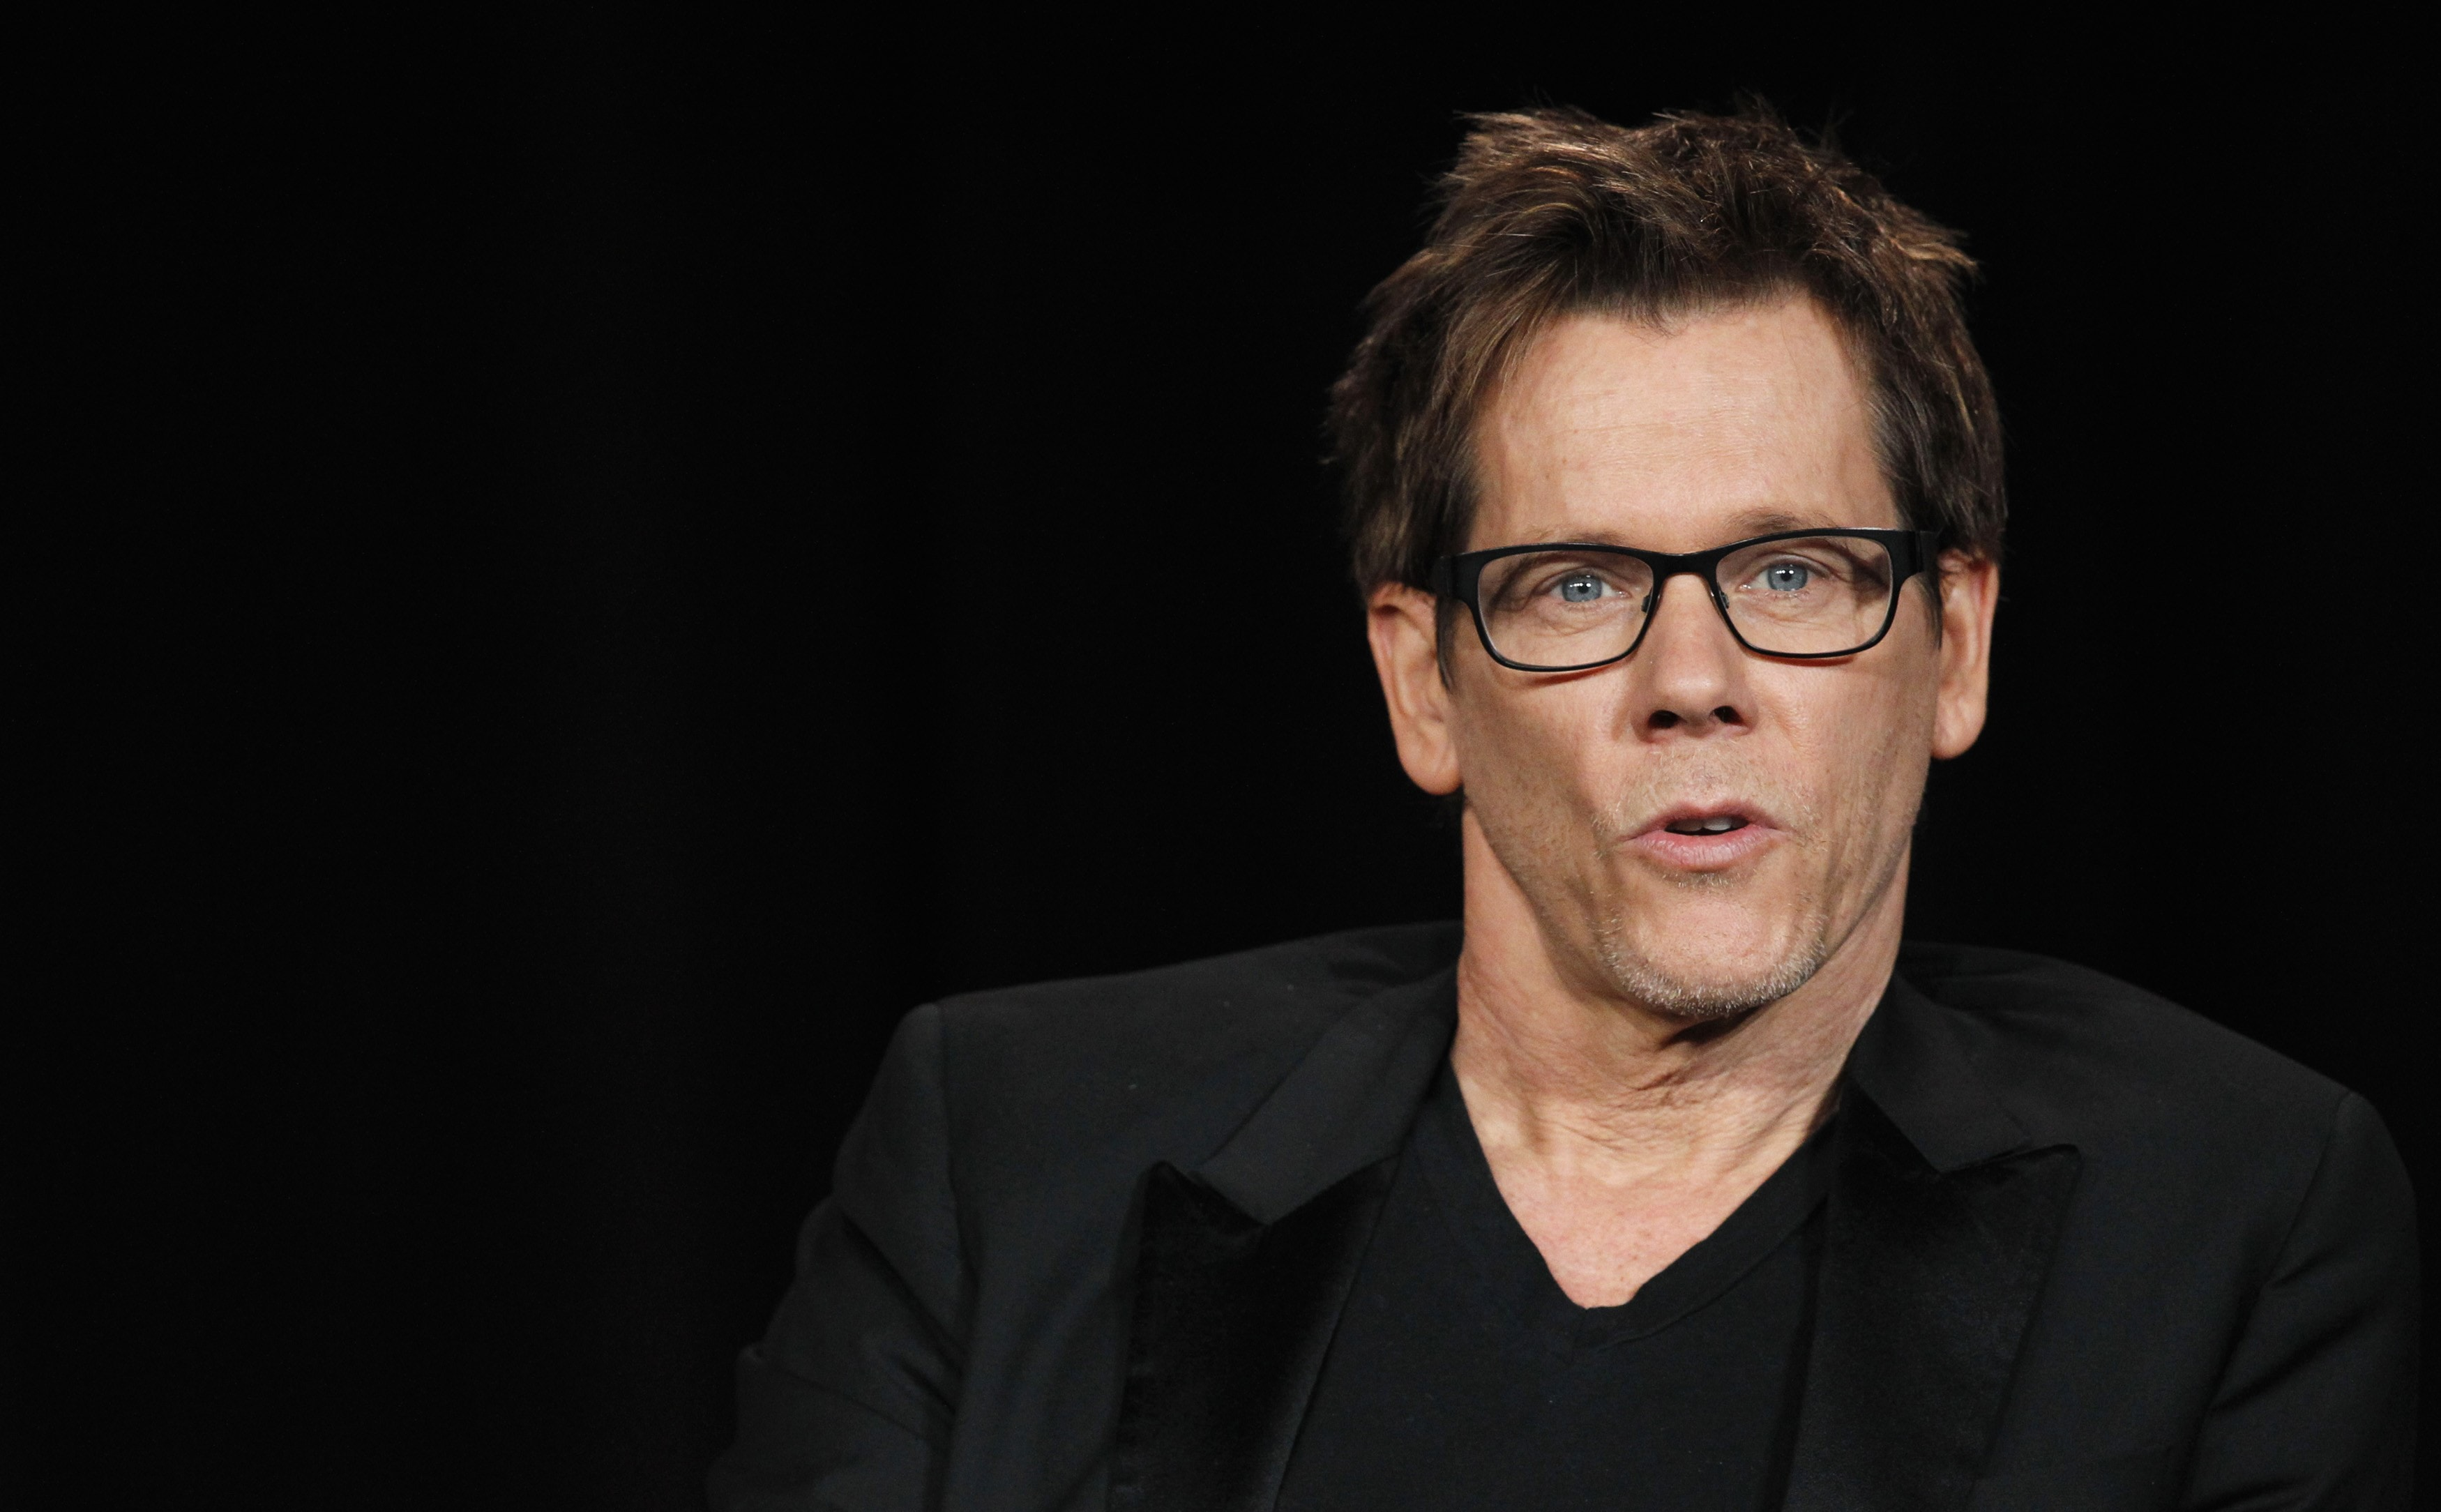 Kevin Bacon Wallpaper